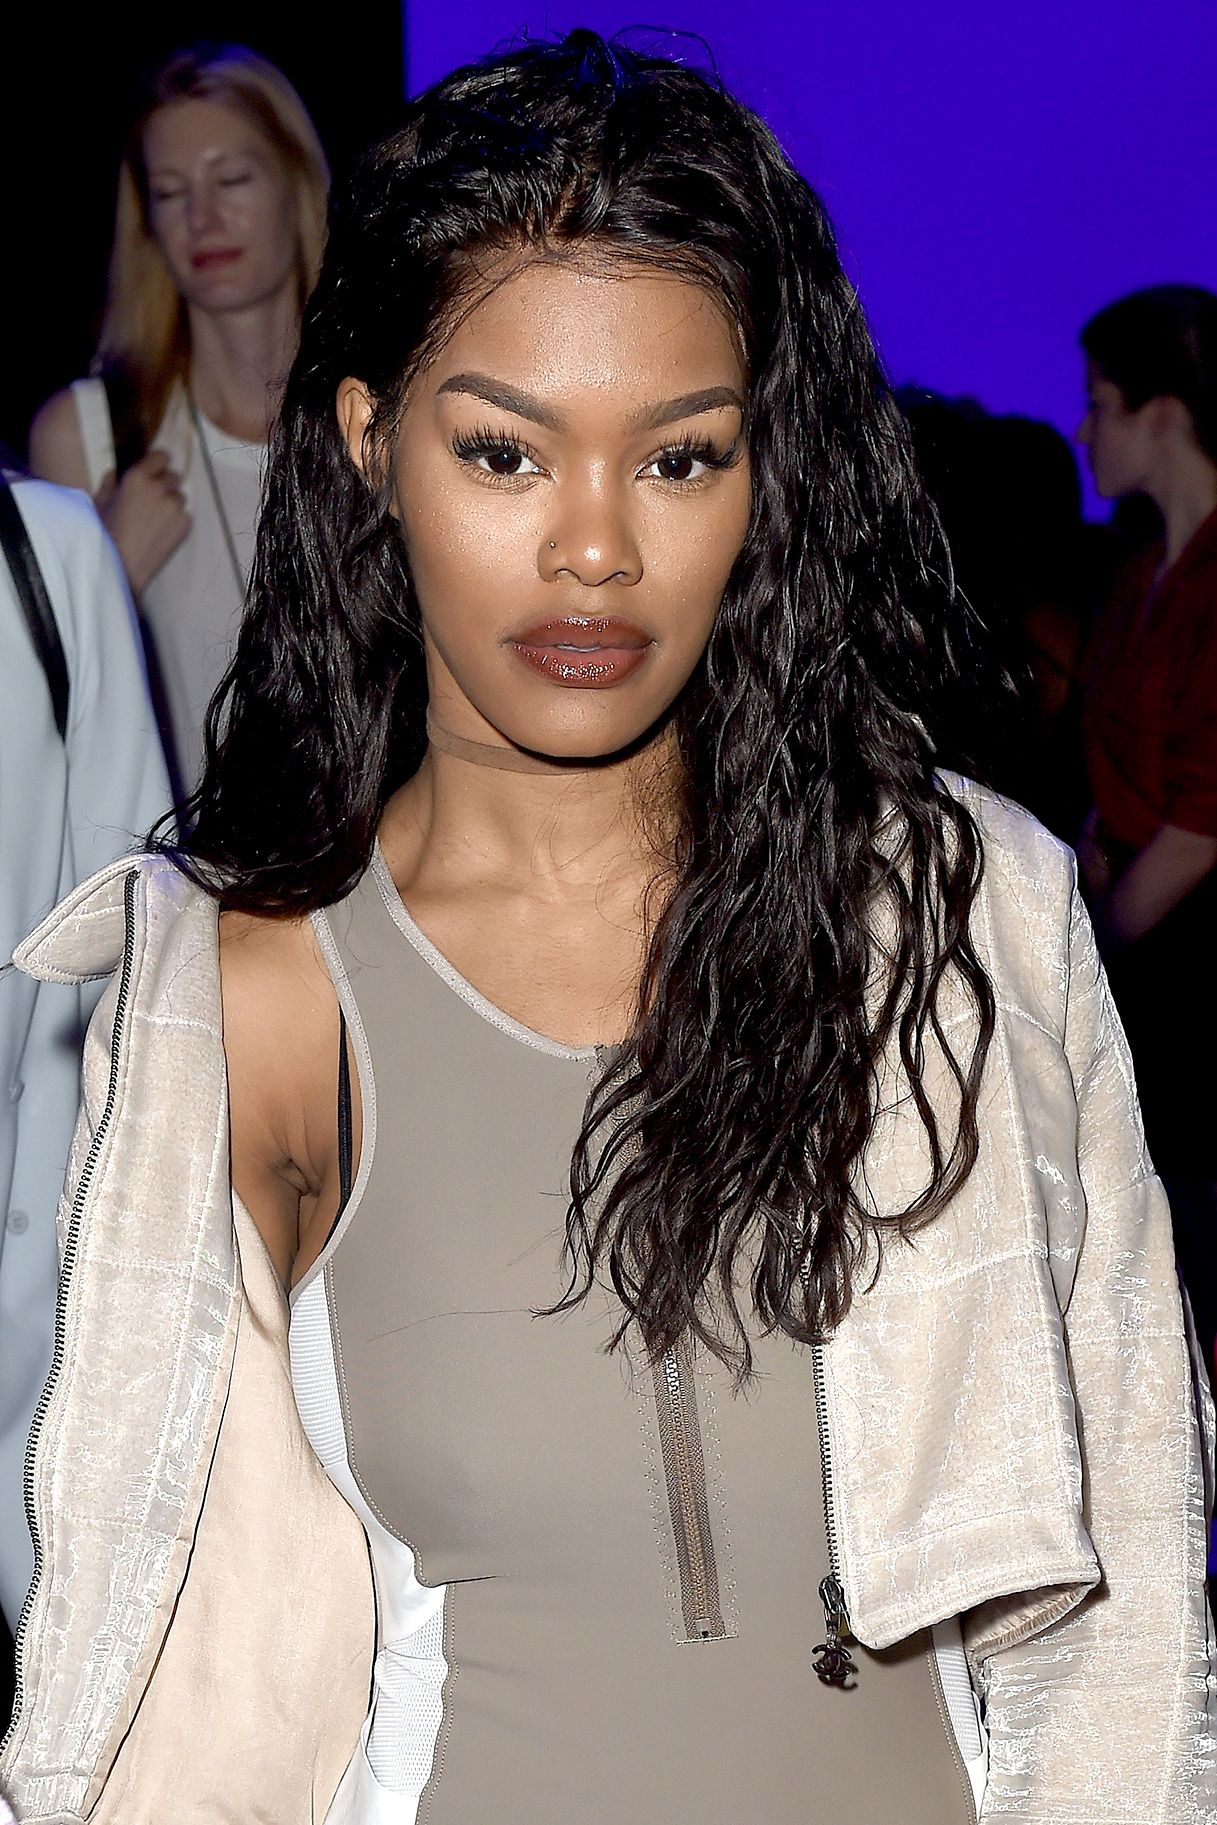 Kanye S Fade Star Teyana Taylor Dishes On That Shower Scene With Her Man Hair Styles 2016 Teyana Taylor Beauty Videos